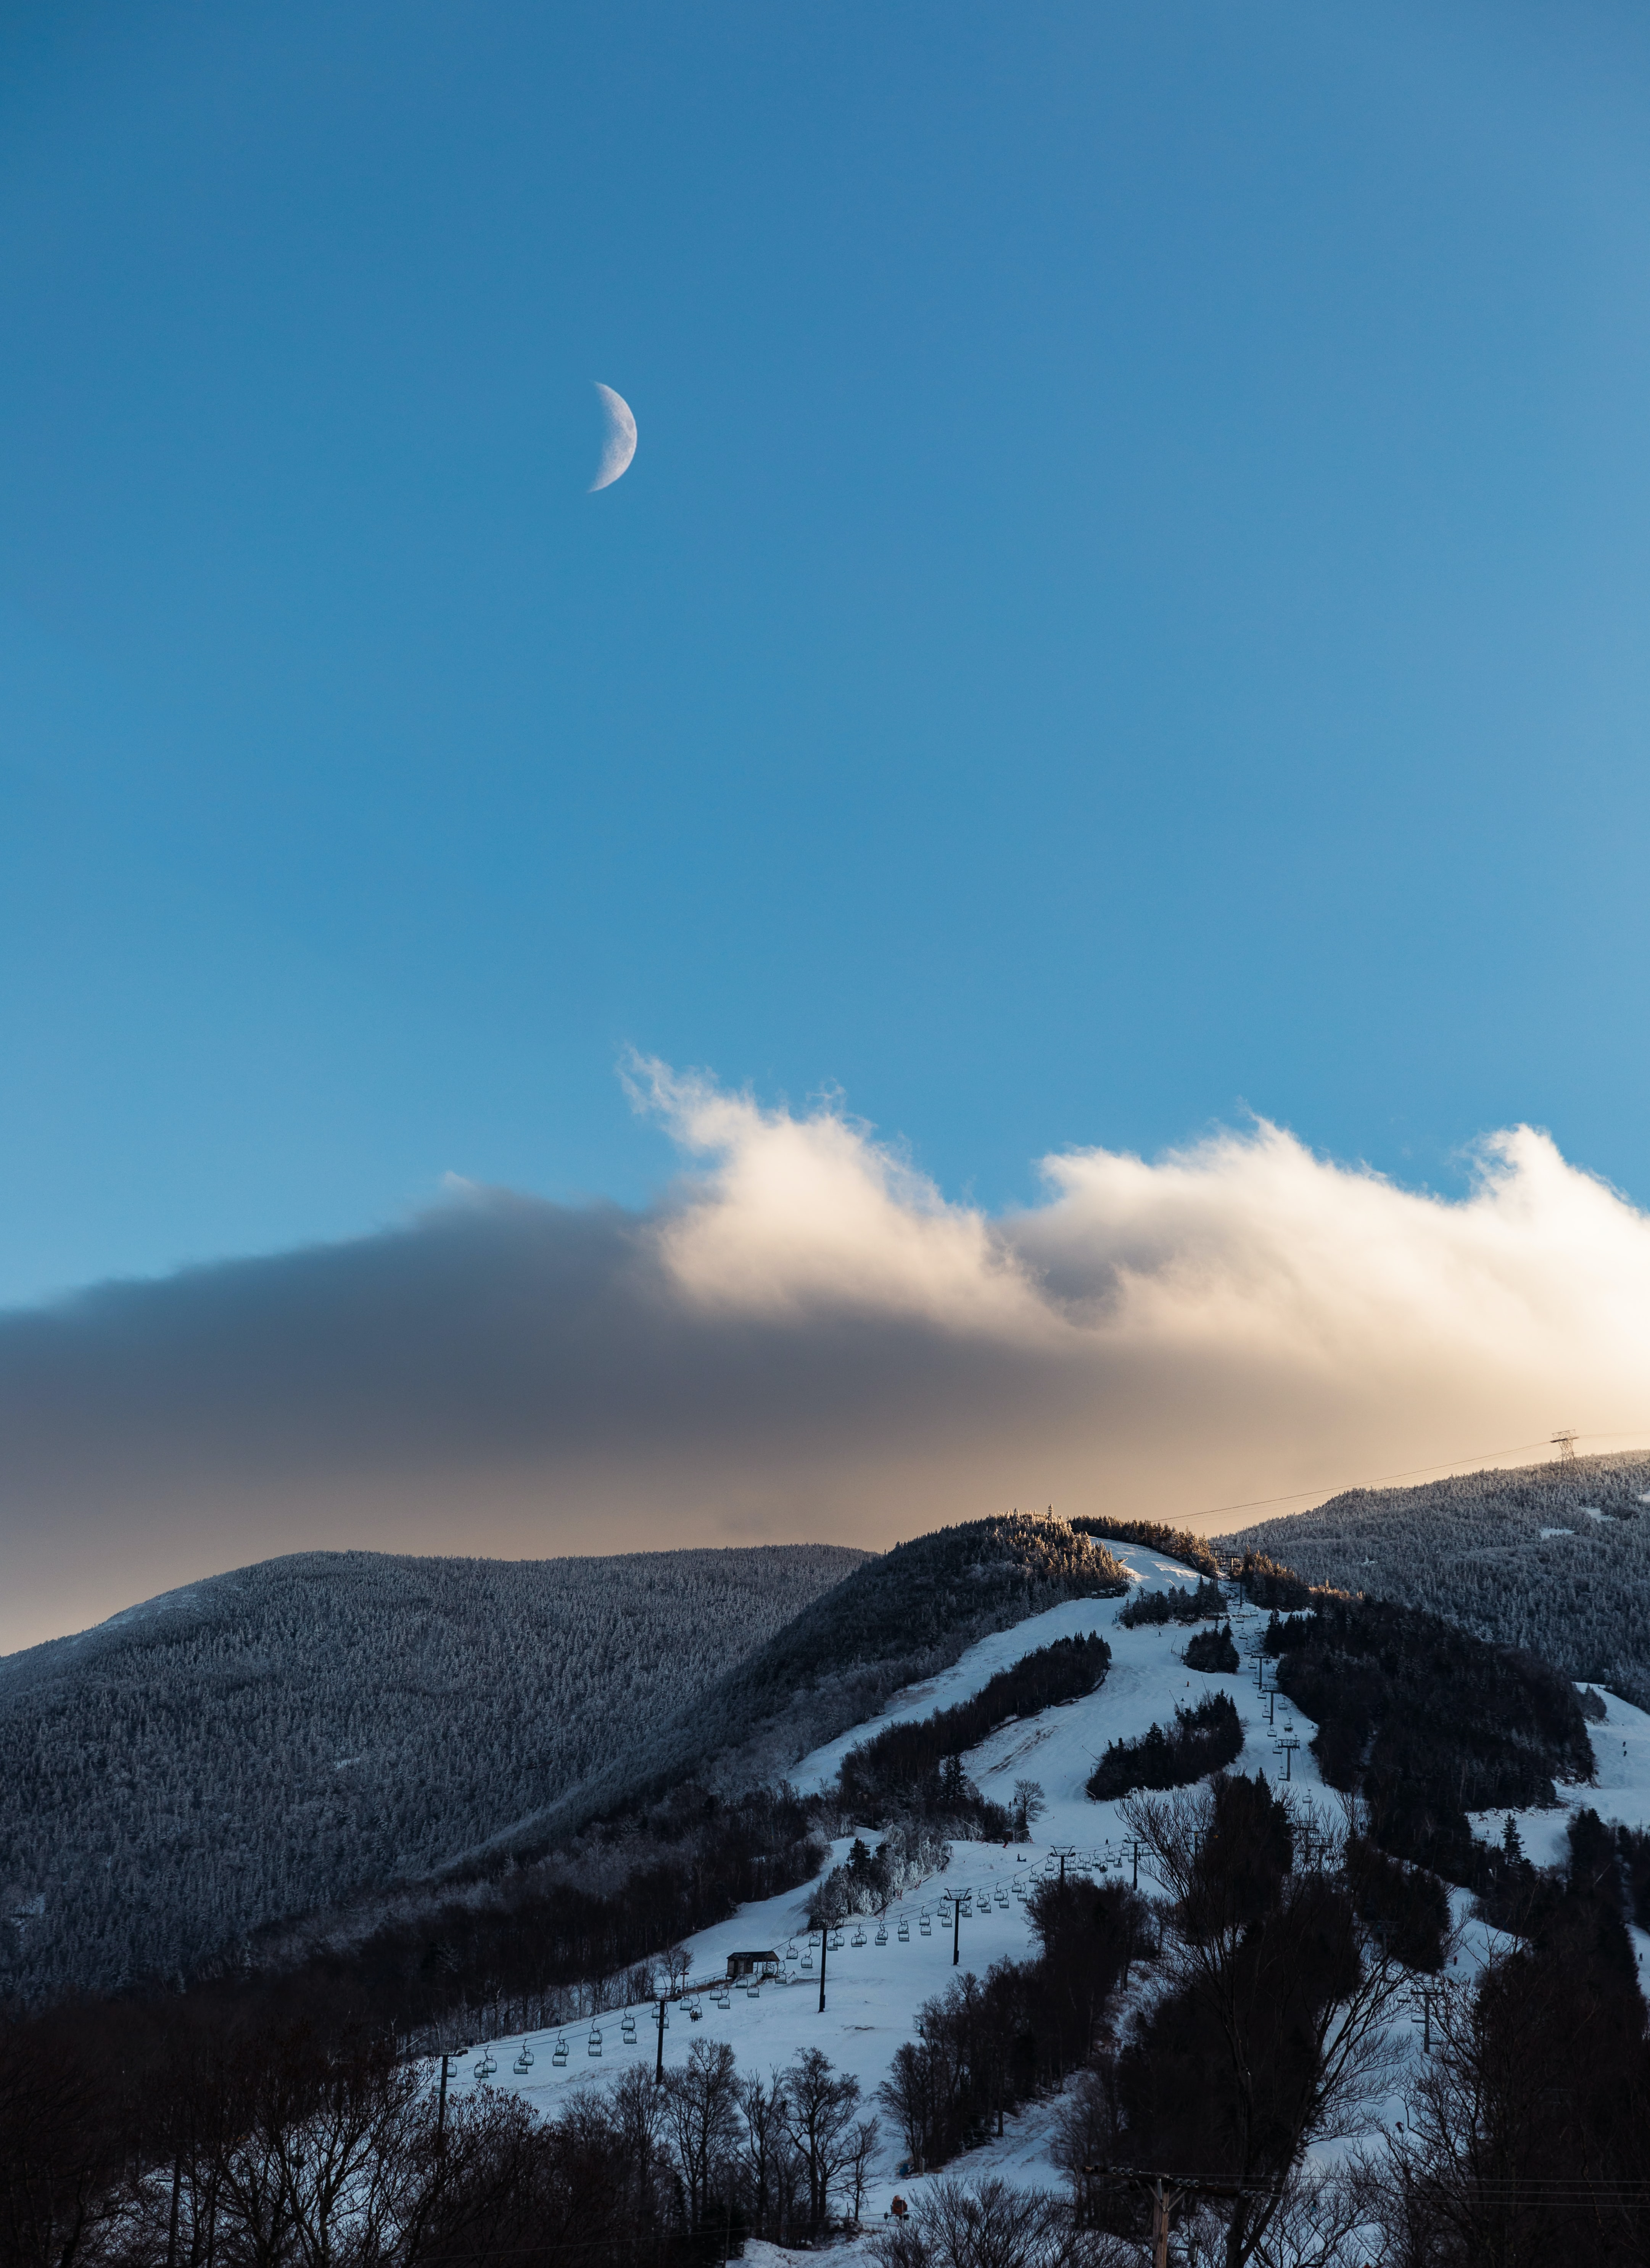 snow and plant covered mountain under crescent moon during daytime